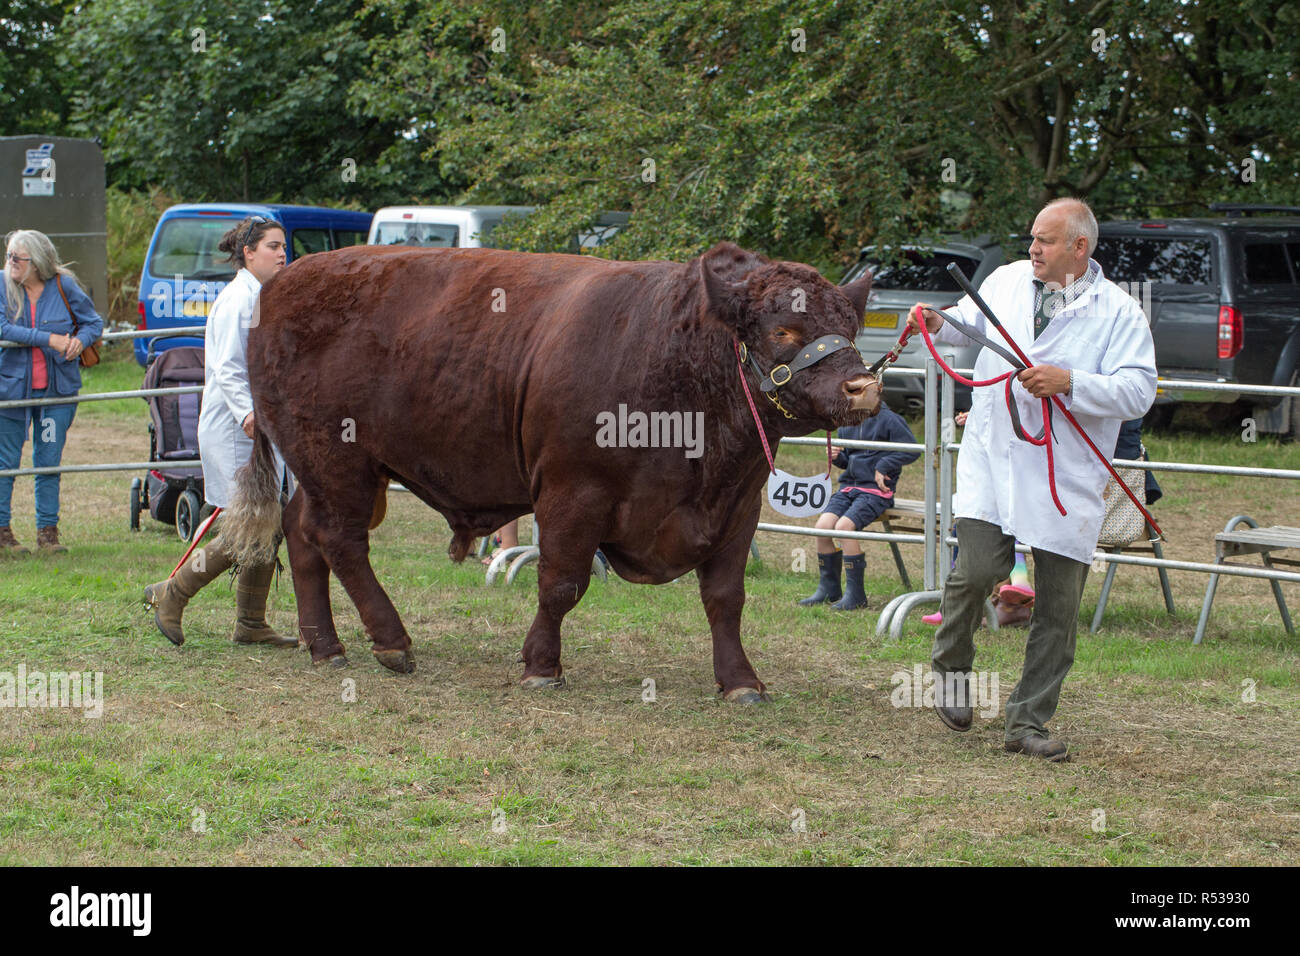 Lincoln Red Bull being led to the show ring by nose ring and flat leather halter by stockman and assistant, stock stick in hand. - Stock Image